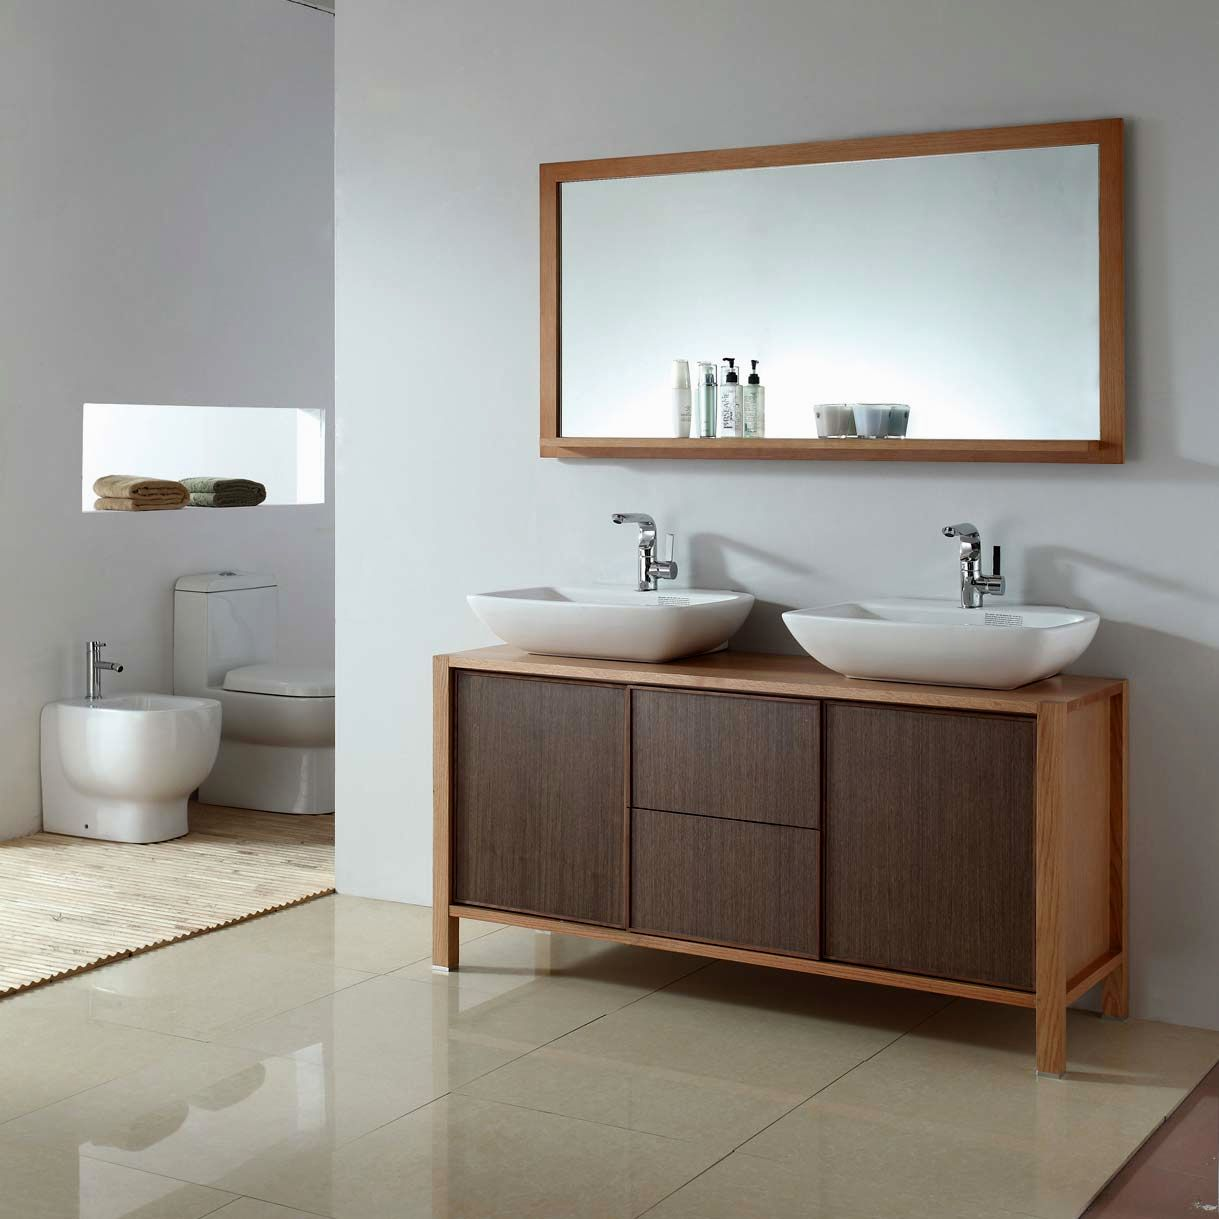 finest oval bathroom mirrors architecture-Beautiful Oval Bathroom Mirrors Décor